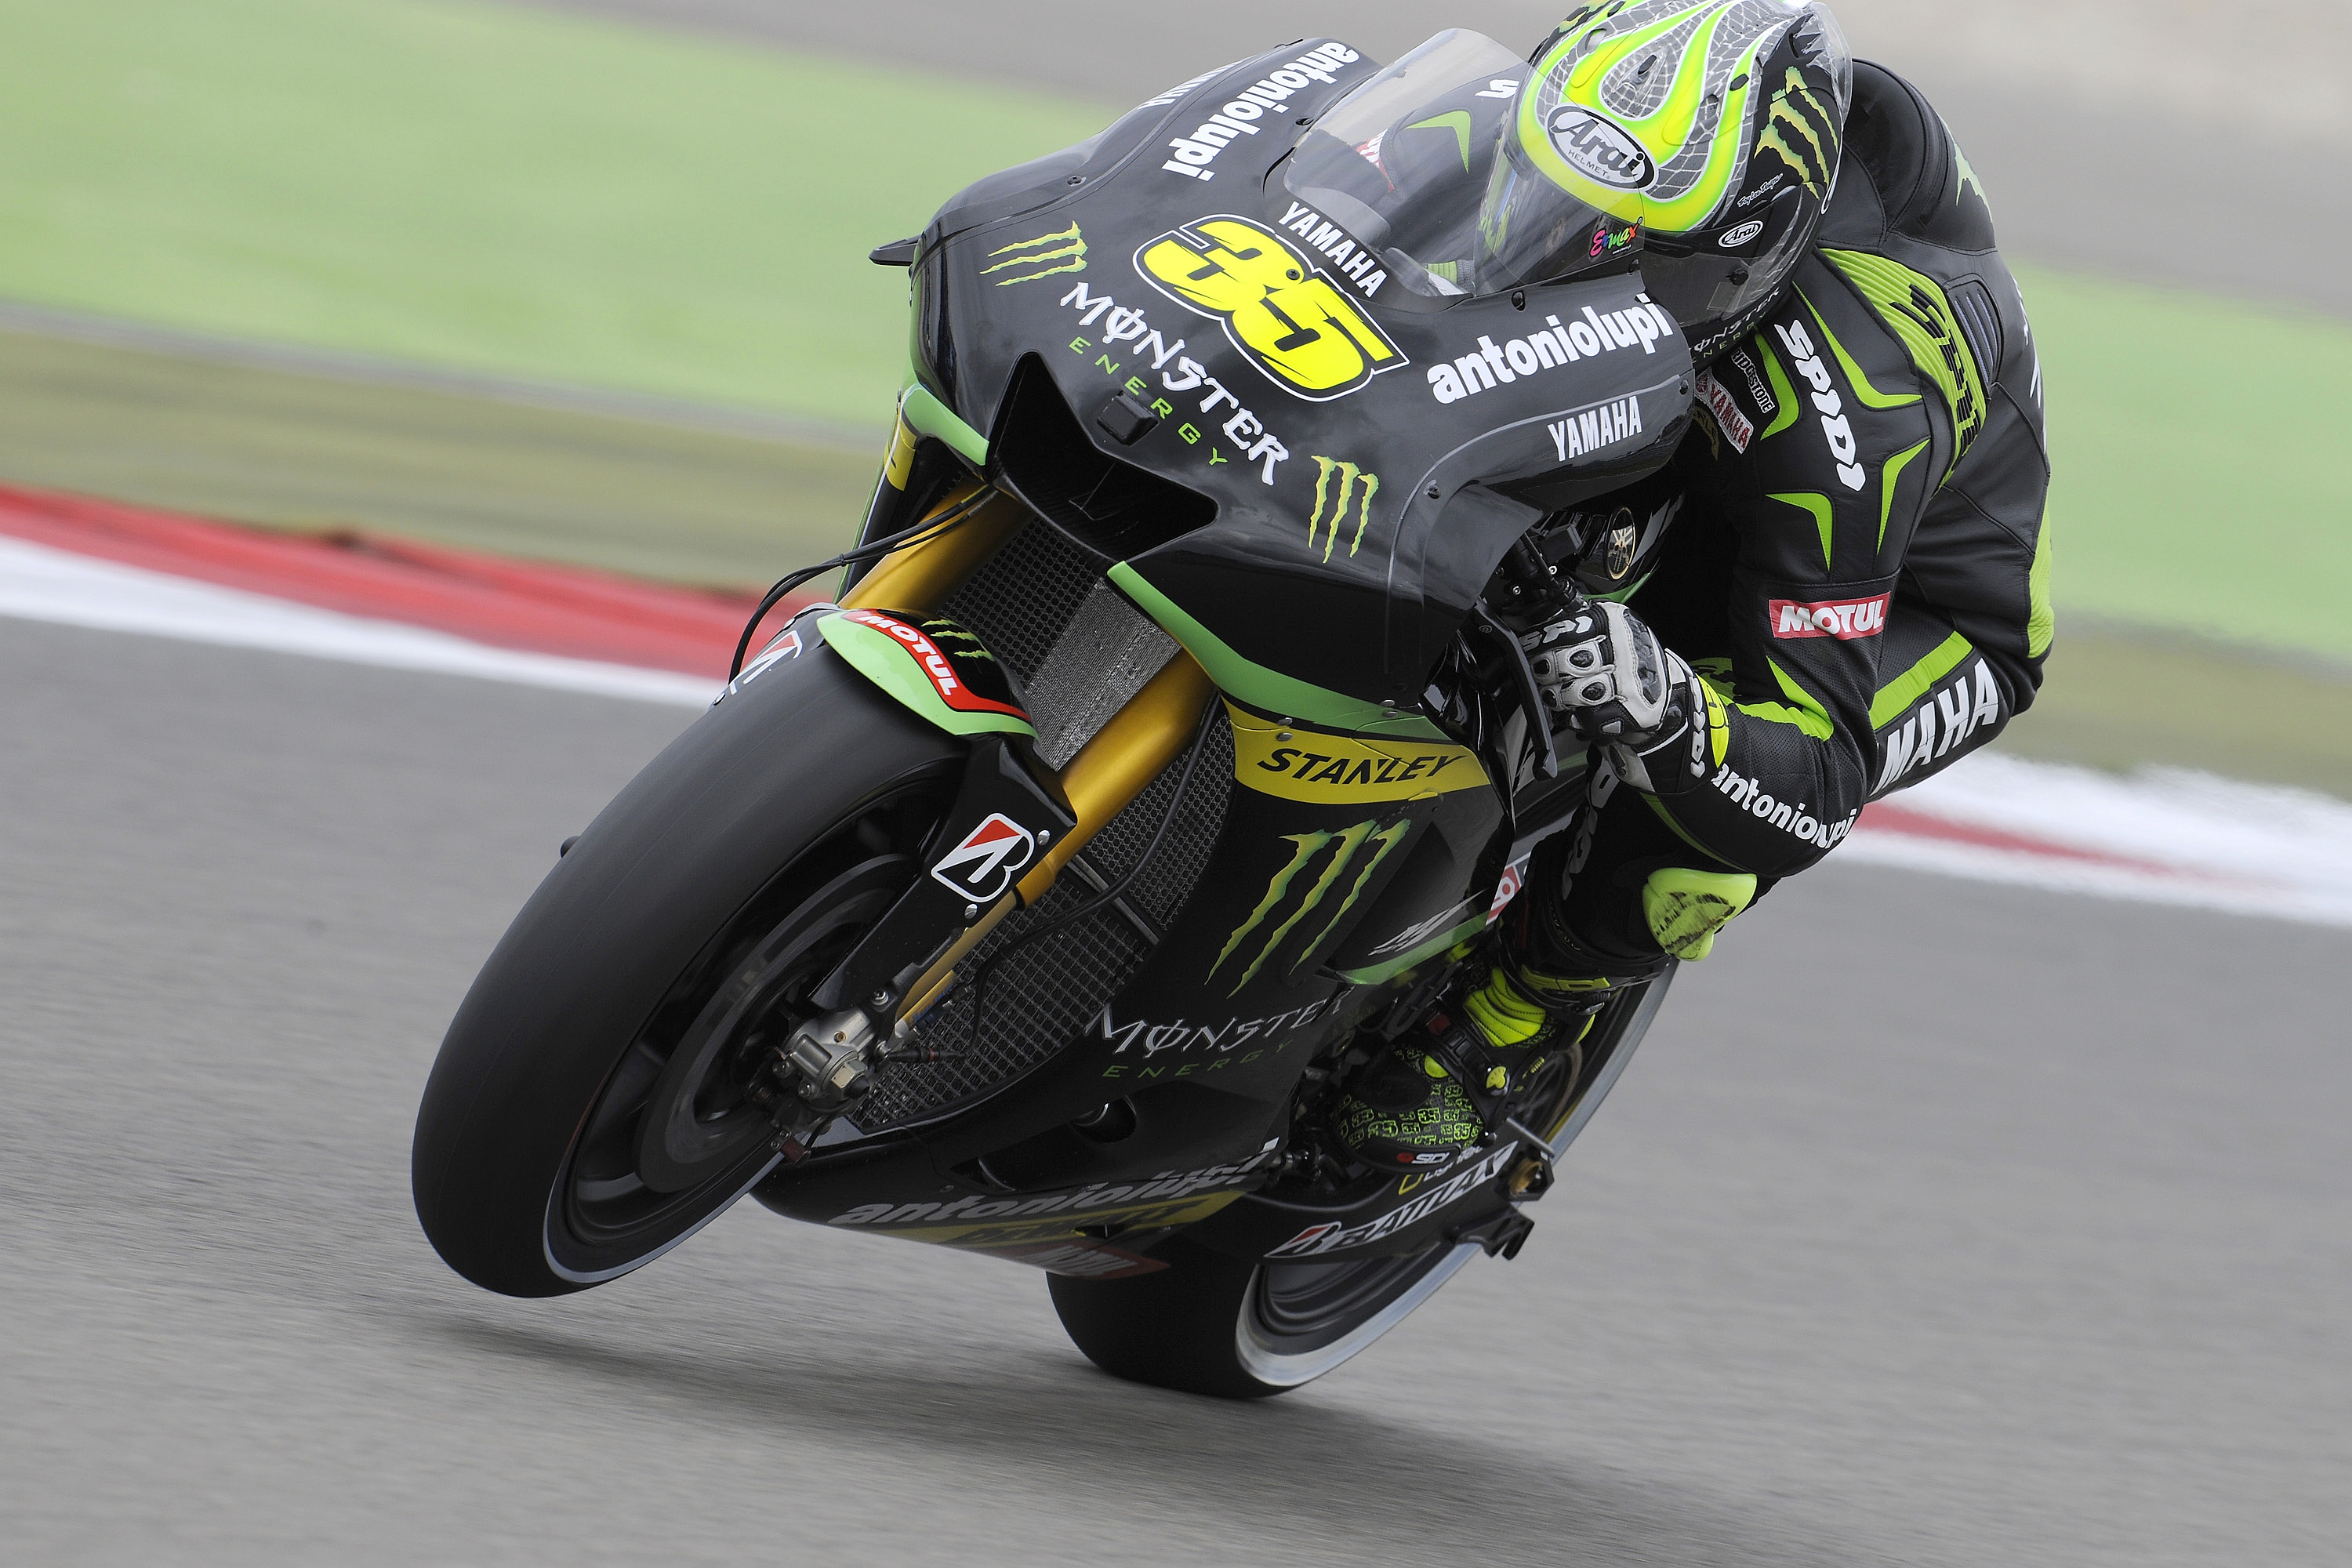 Crutchlow claims first ever MotoGP pole